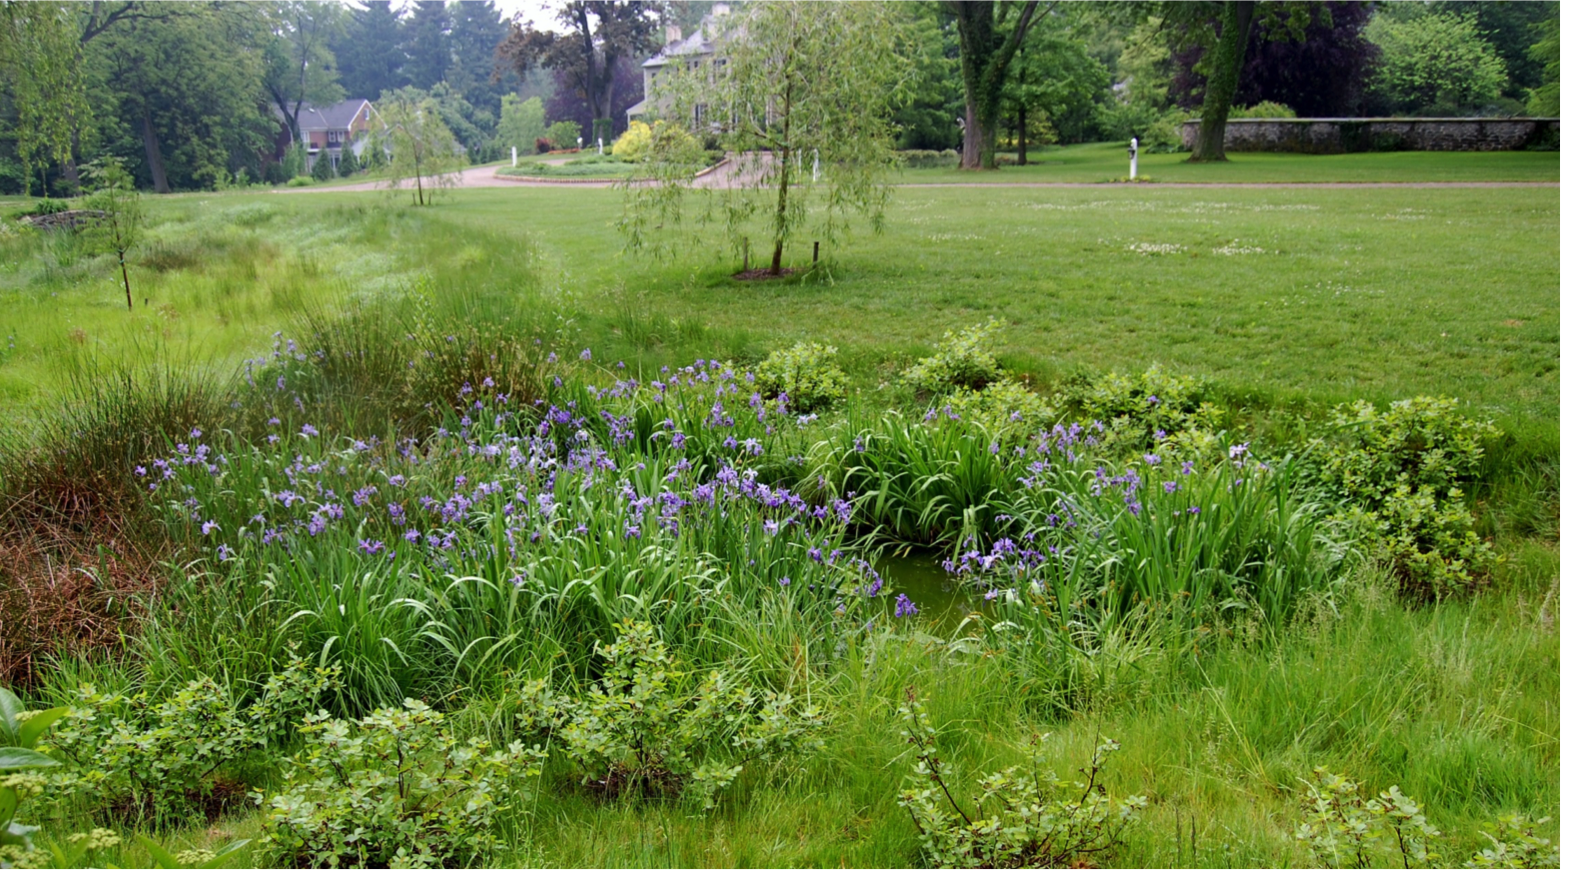 Restored streambank with a no mow zone and pocket wetlands enhanced with native species (c) LandStudies